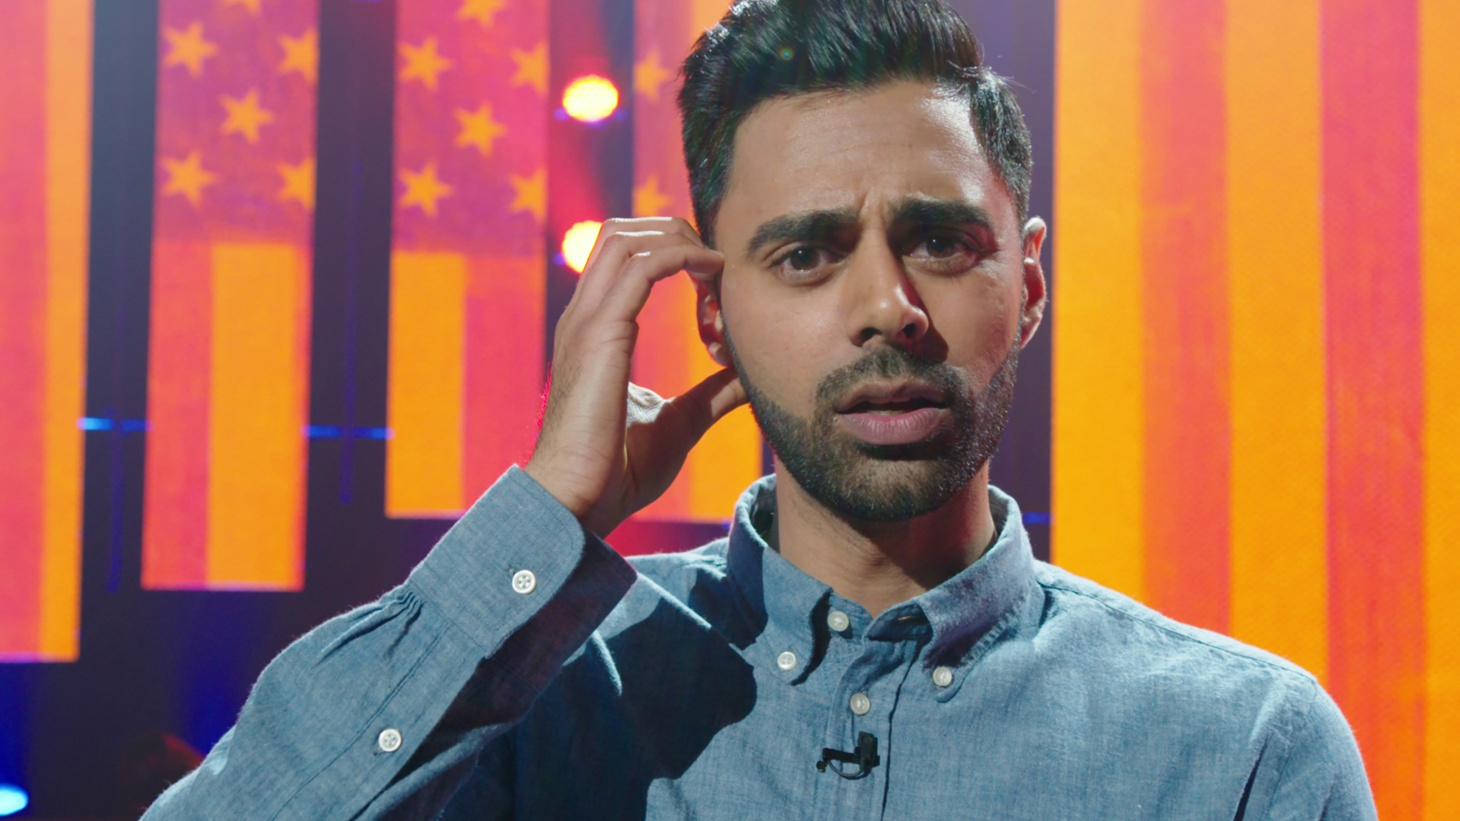 As a Muslim comedian, Daily Showcorrespondent Hasan Minhaj found he could relate to political reporters when he agreed to the daunting challenge of doing the first White House Correspondents' Dinner of the Trump administration. Minhaj tells us about crafting his routine in just three weeks, and the far slower process of creating his new and very personal Netflix special,Homecoming King.